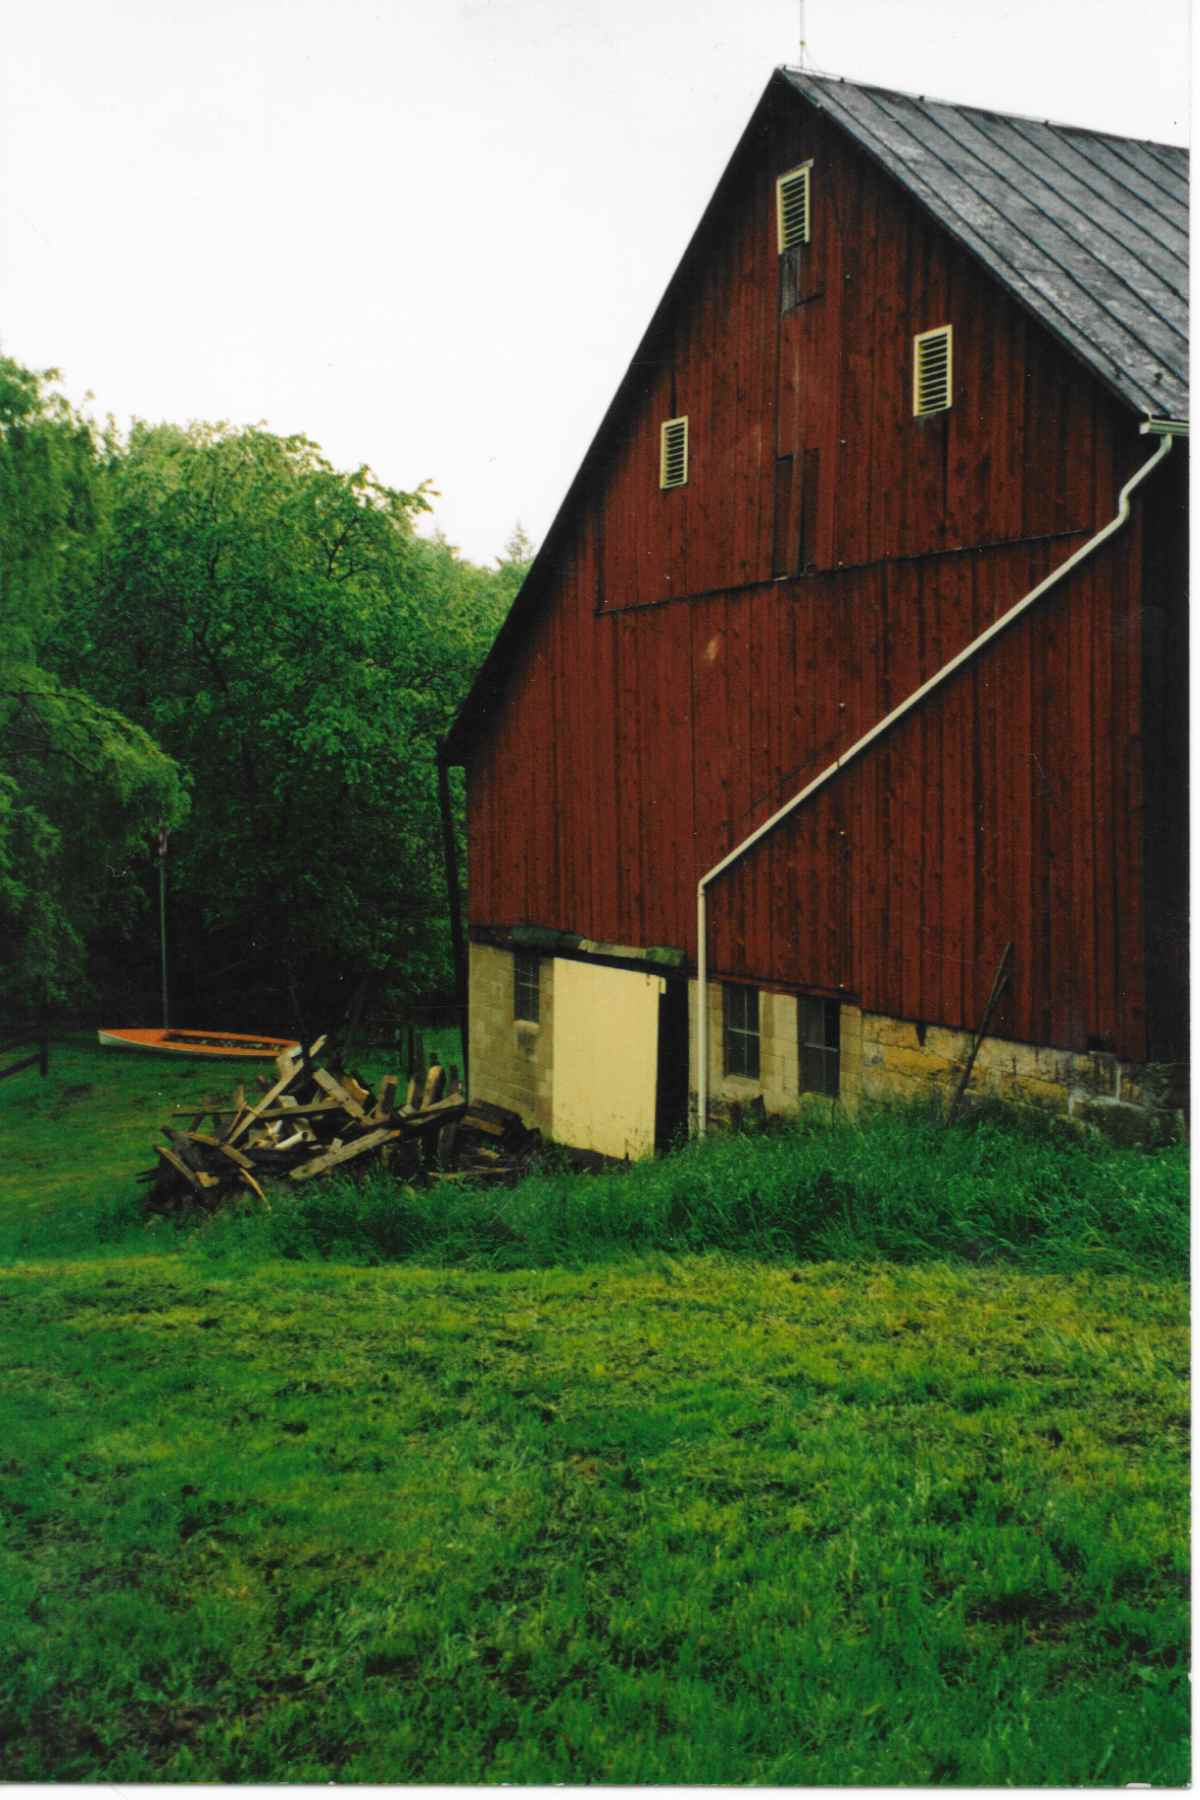 The barn at Chanteclaire Farm prior to renovation